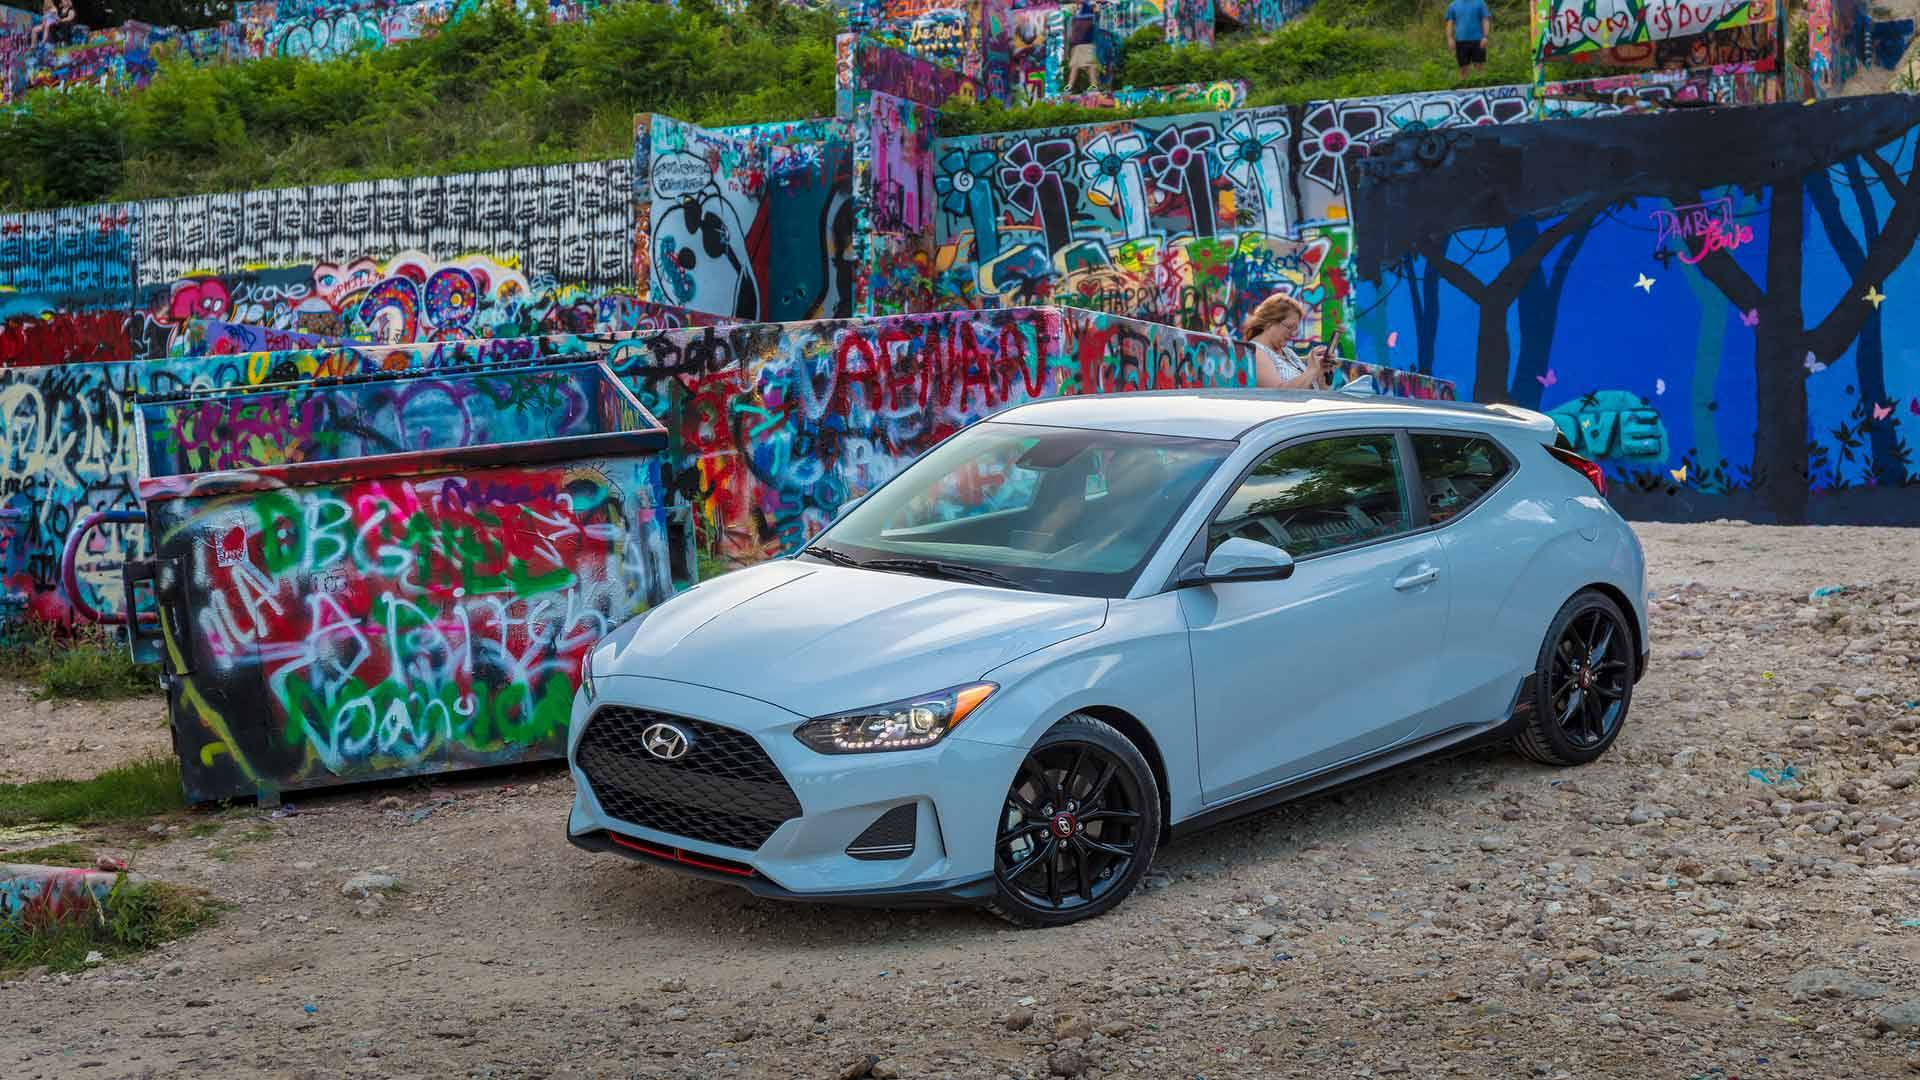 2019 Hyundai Veloster Starts At $18,500, Turbo Goes For $22,900